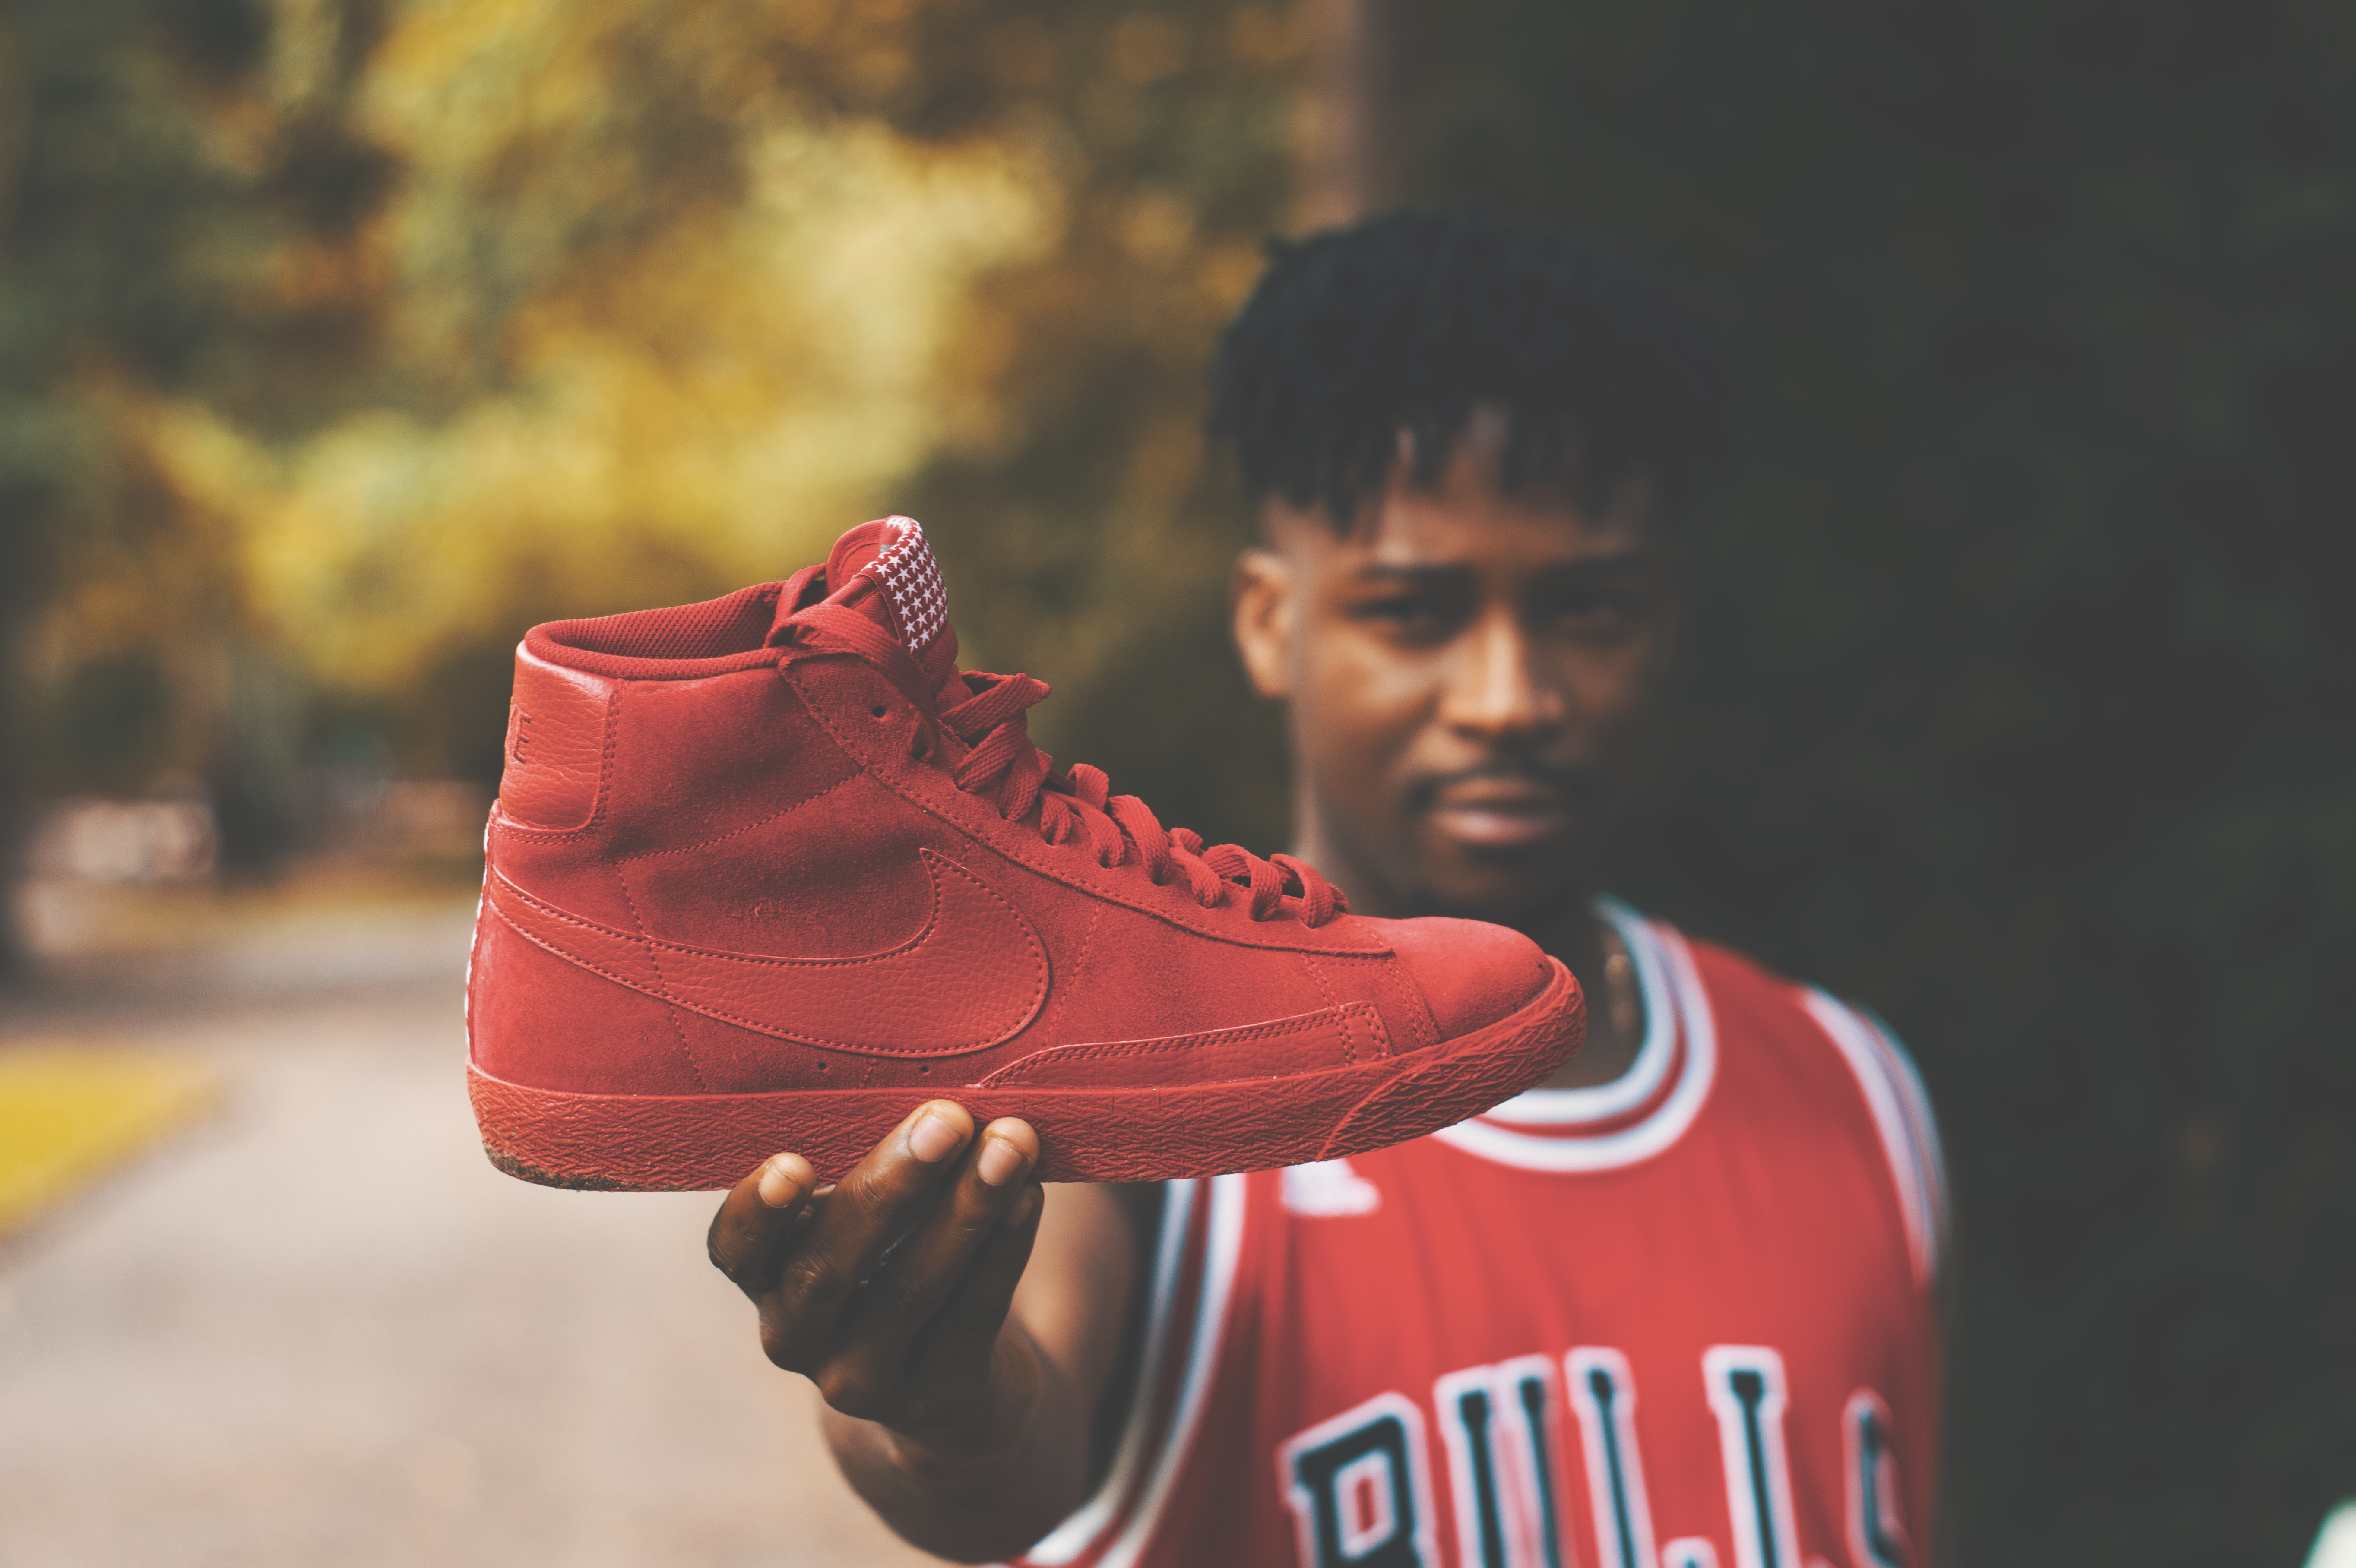 man showing red Nike high-top sneaker